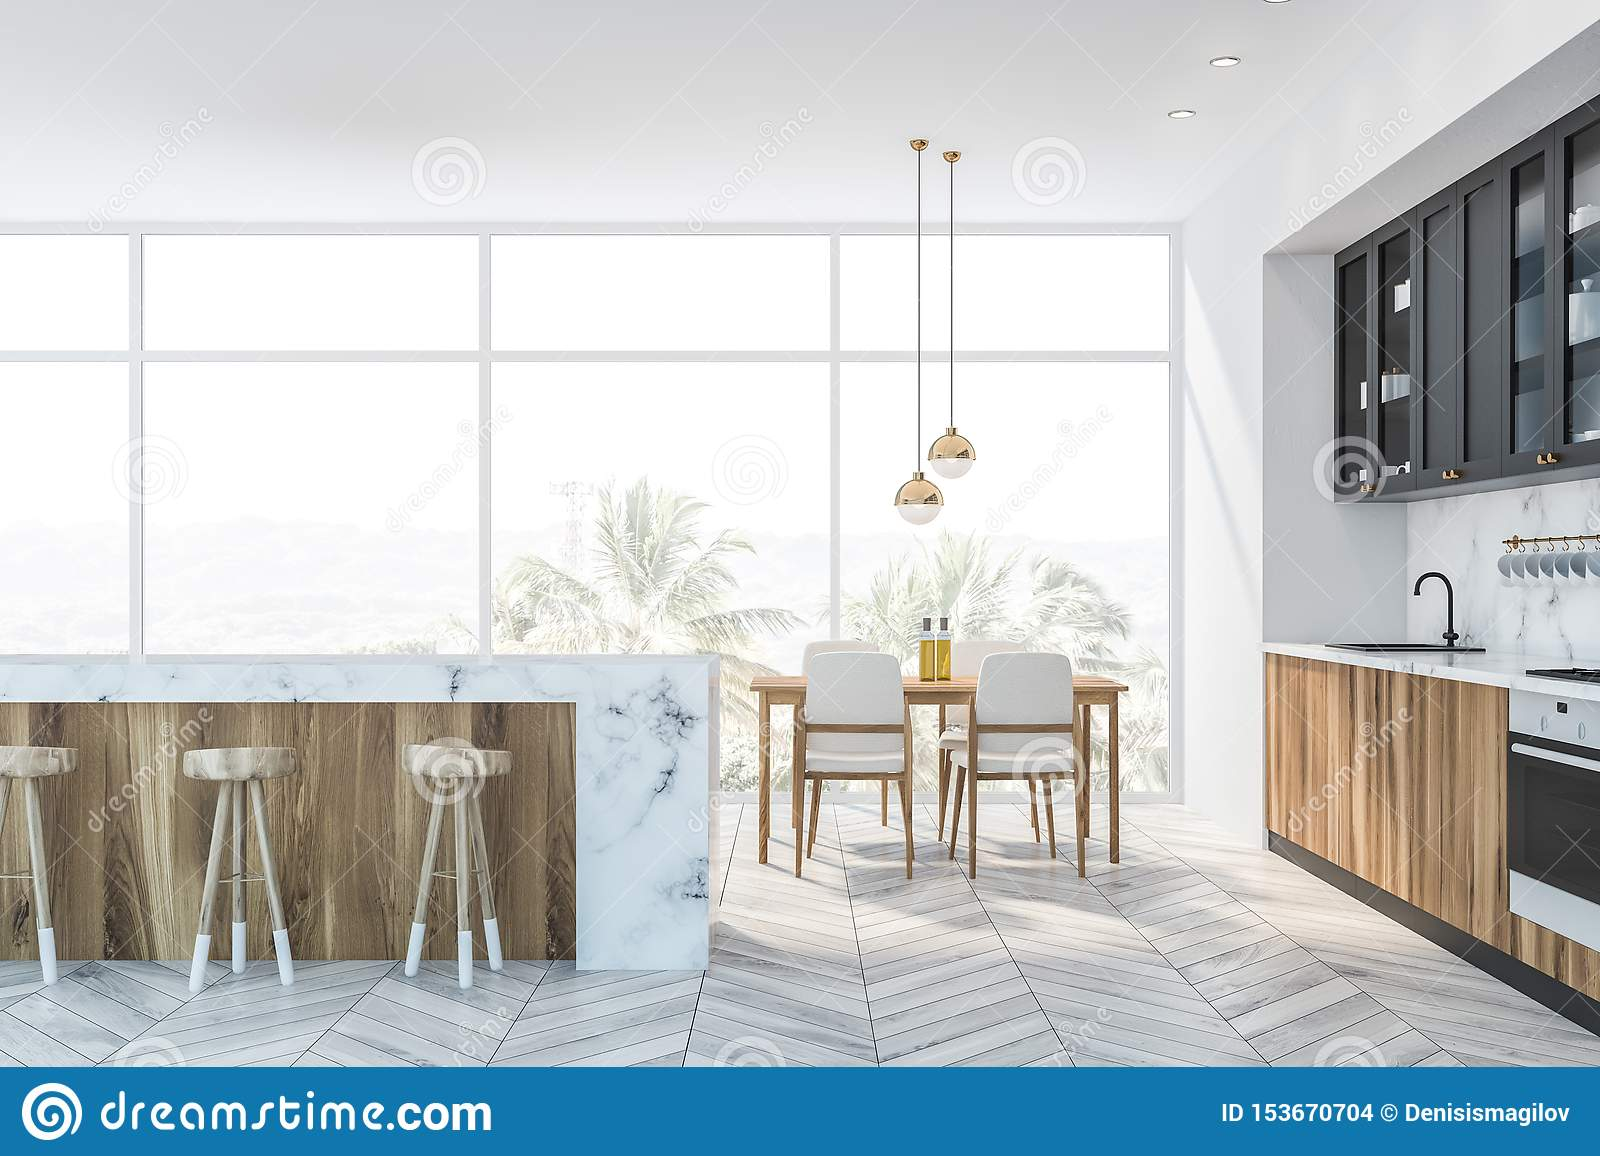 White Marble And Gray Kitchen Bar And Table Stock Illustration Illustration Of Luxury Cabinetry 153670704